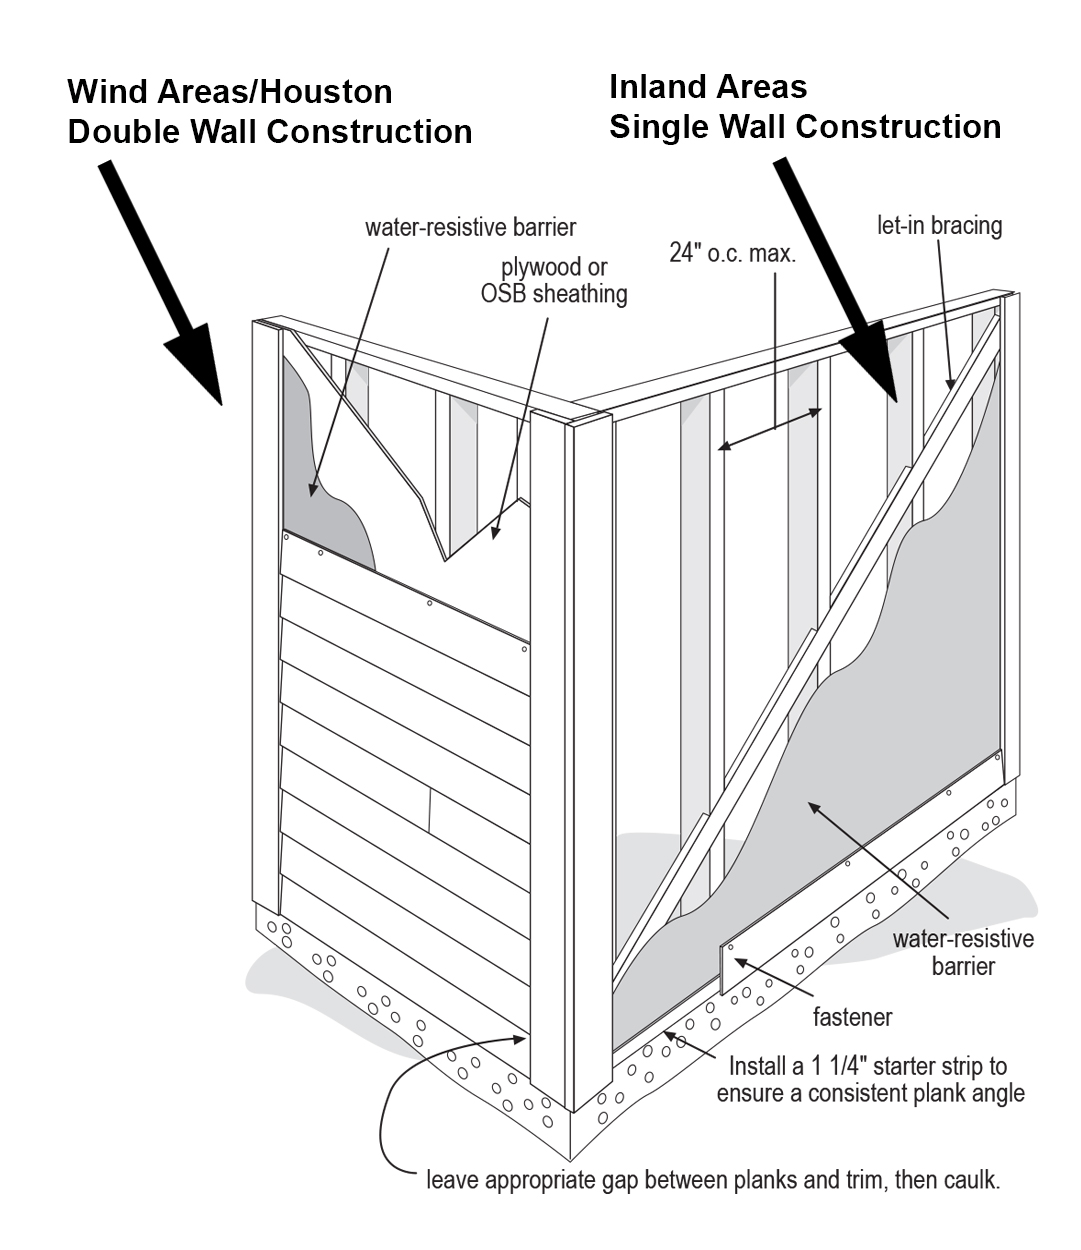 Fiber Cement or LP SmartSide Siding? An Asset or Liability with ...